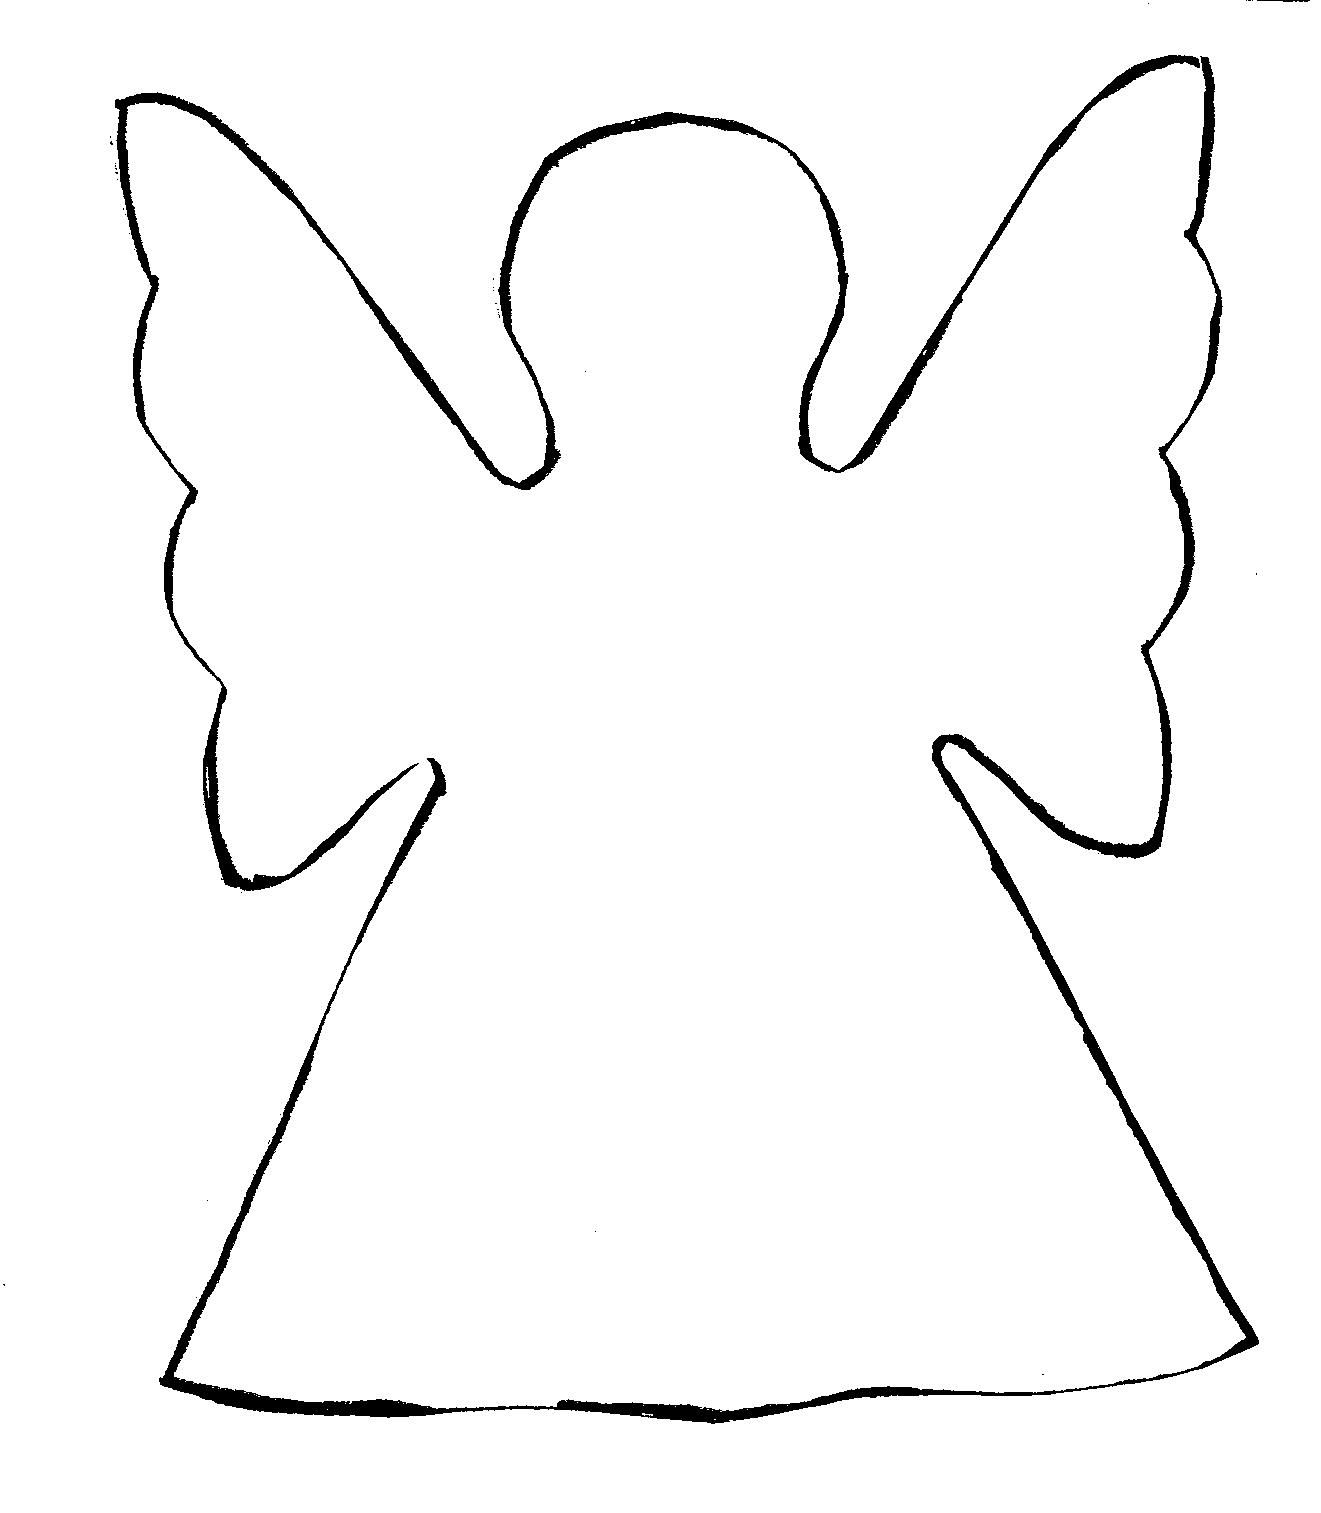 easy cut out paper angels christmas angel clip art christmas easy cut out paper angels christmas angel clip art christmas printable angel templateangel